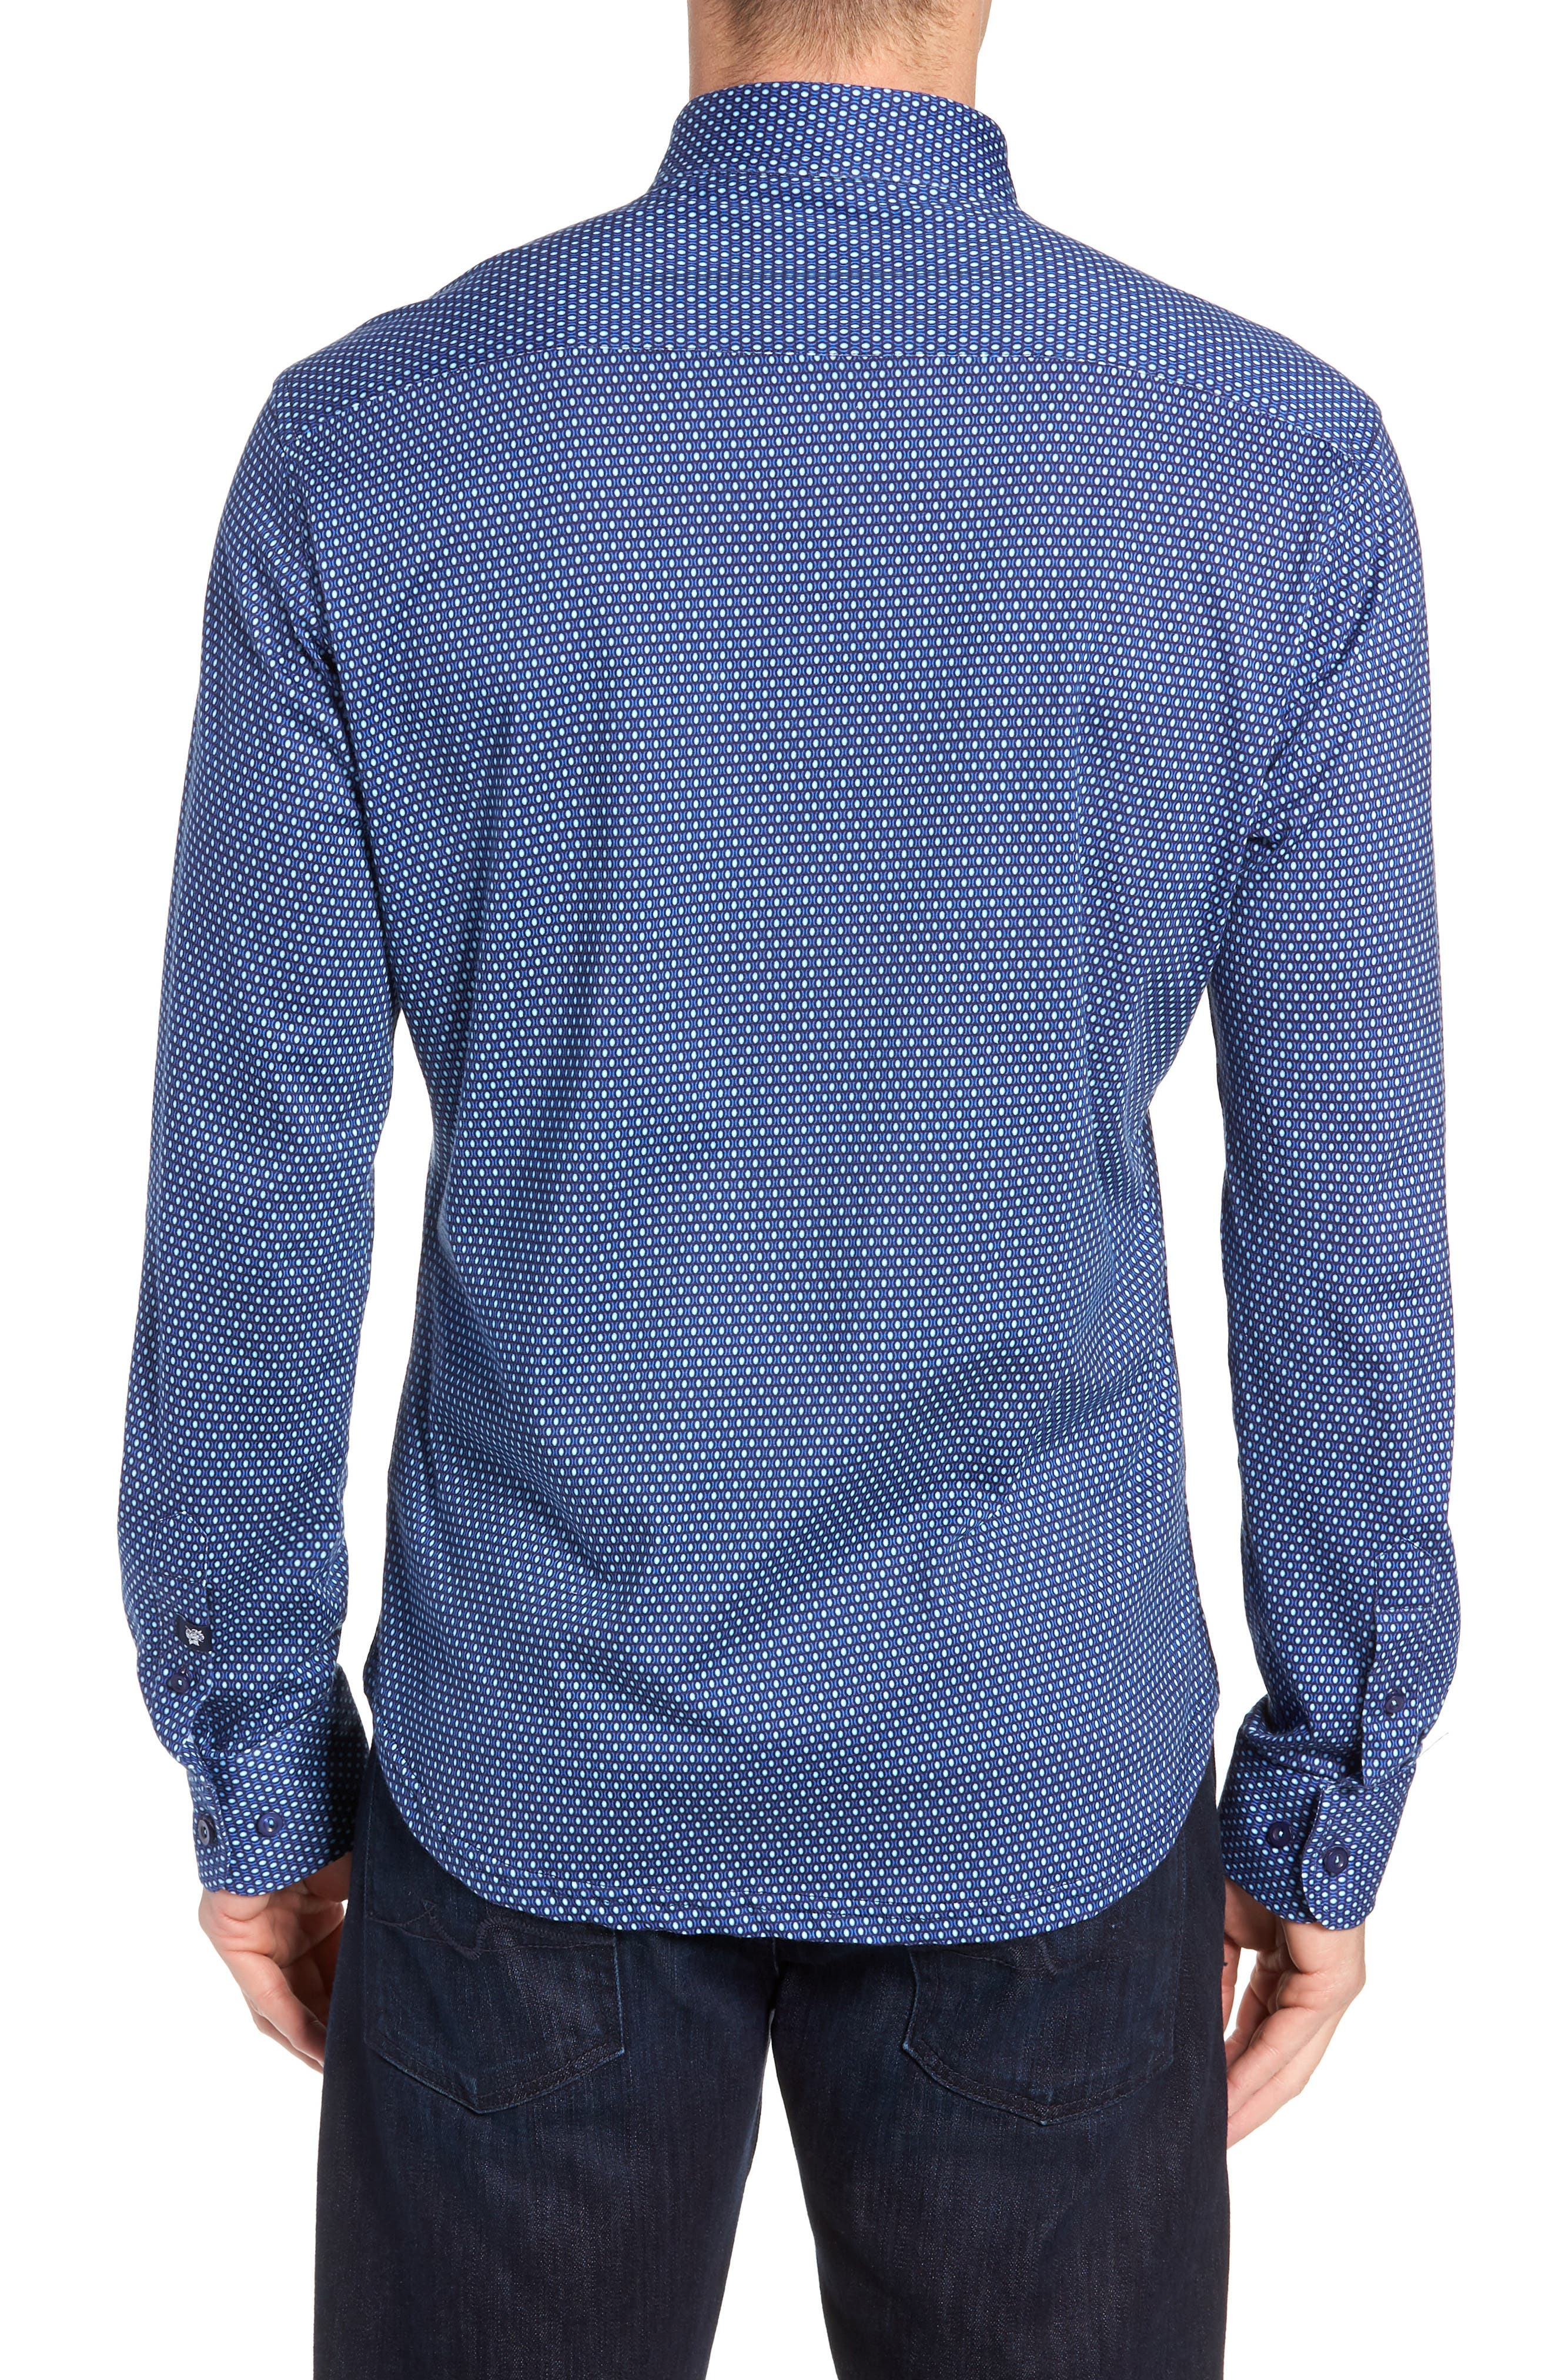 Trim Fit Sport Shirt,                             Alternate thumbnail 3, color,                             NAVY